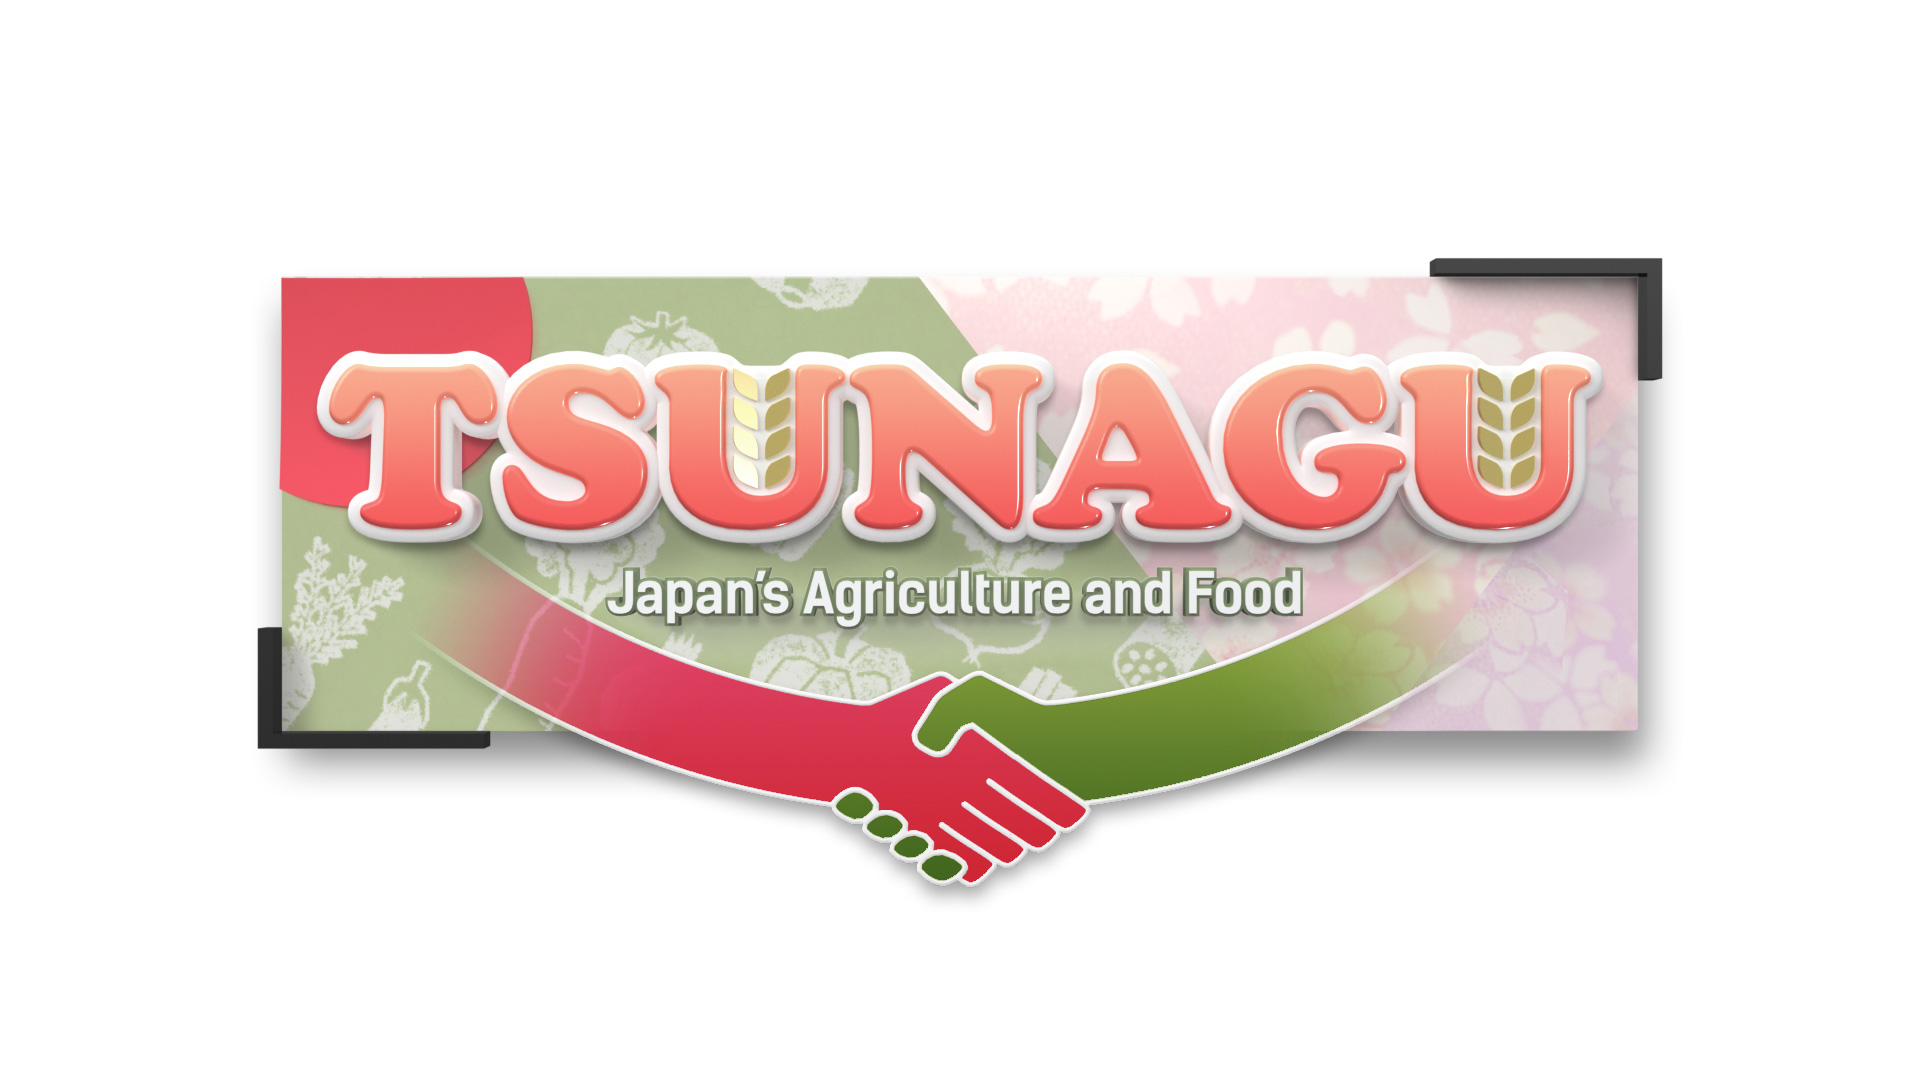 TSUNAGU: Japan's Agriculture and Food